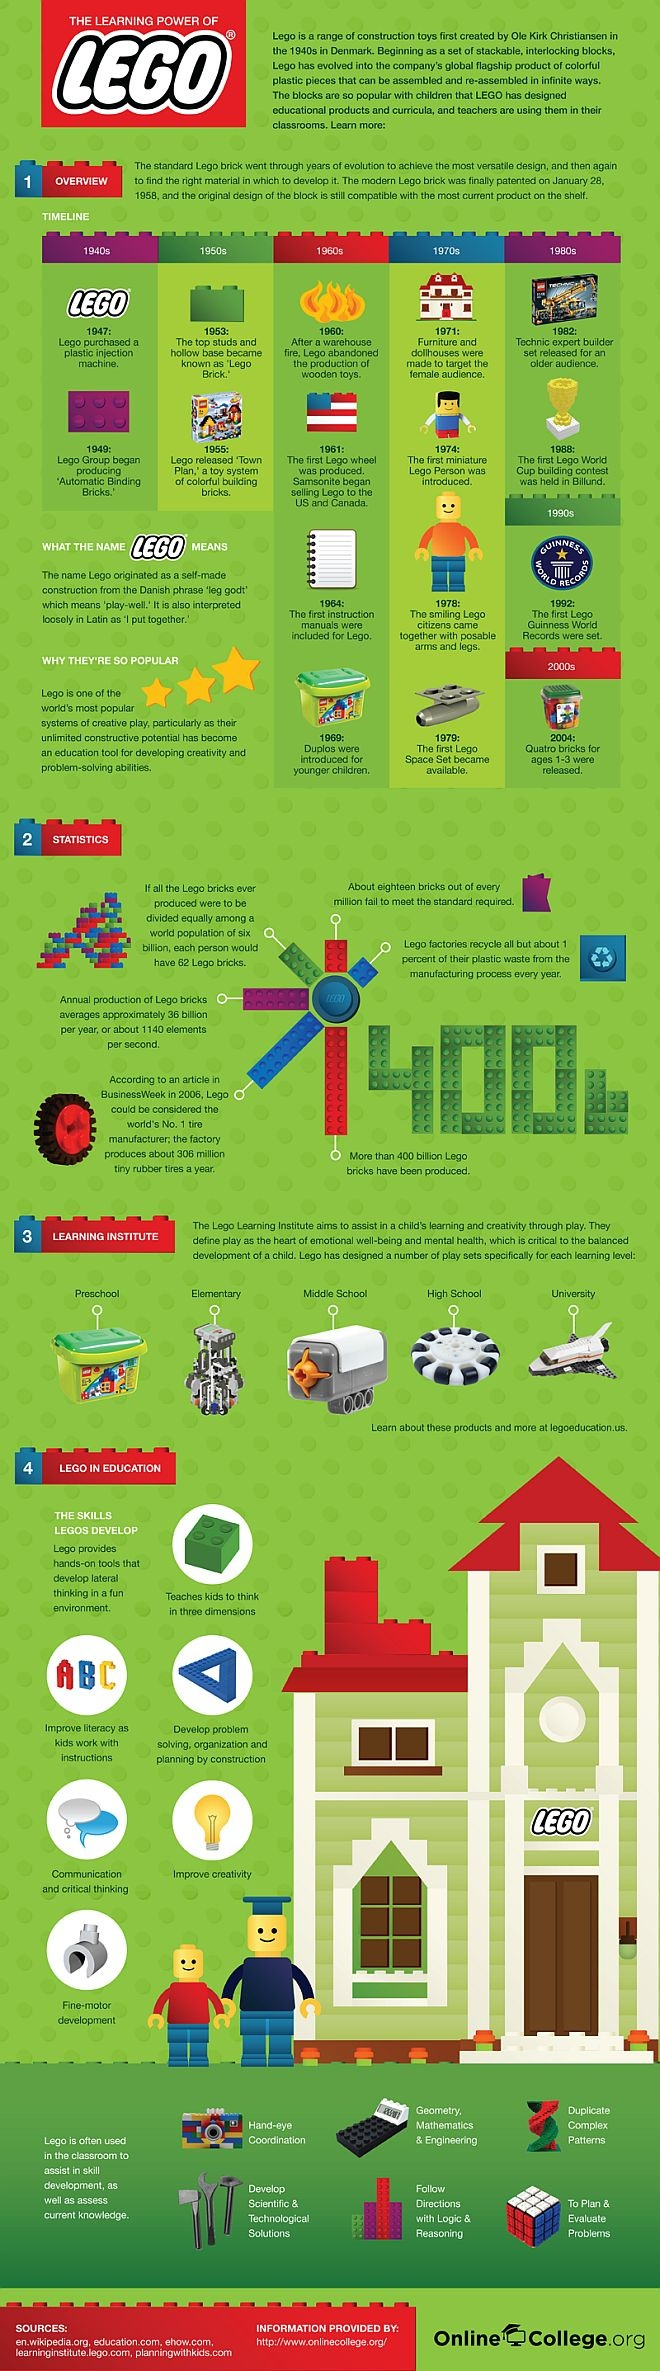 Lego | #infographics repinned by @Piktochart